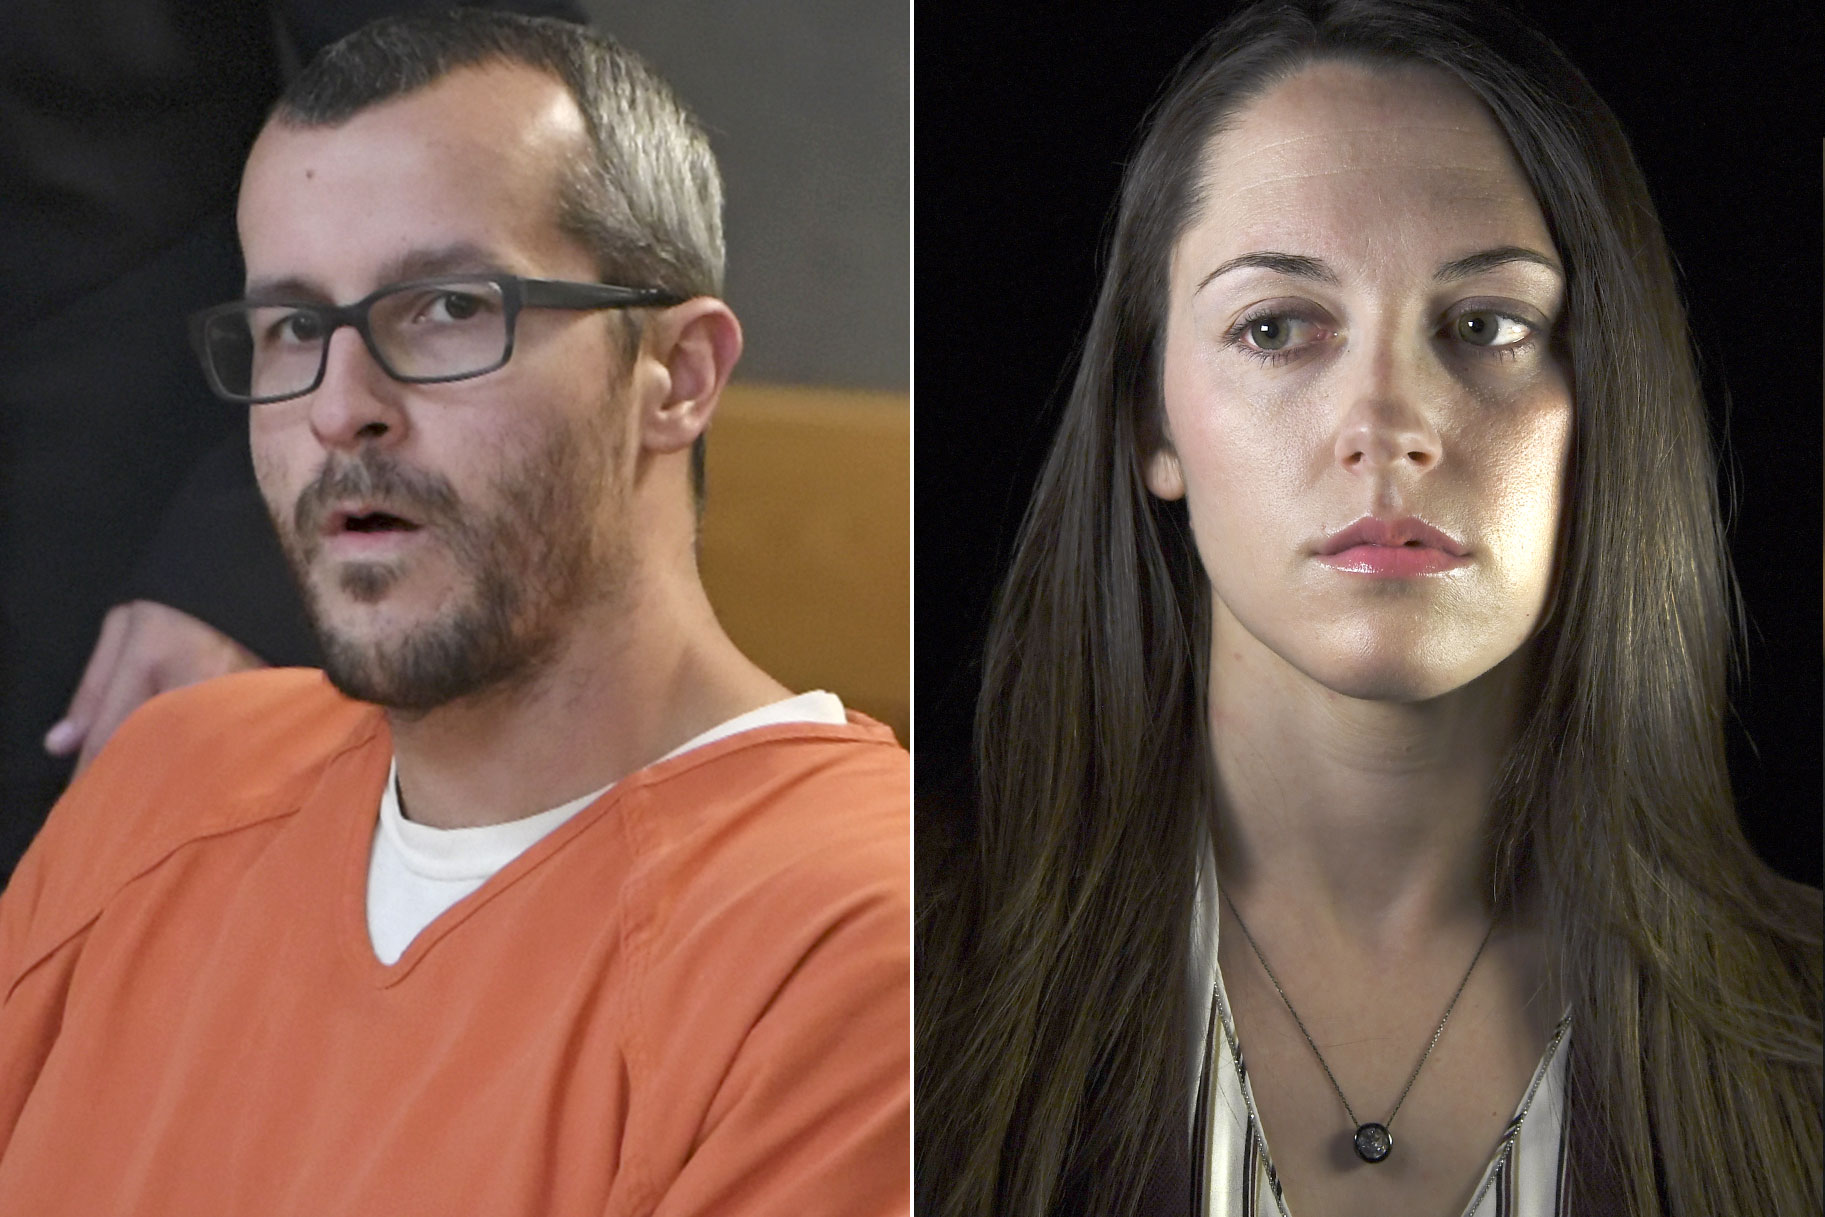 Chris Watts Emails To Nichol Kessinger Show Their Relationship Was